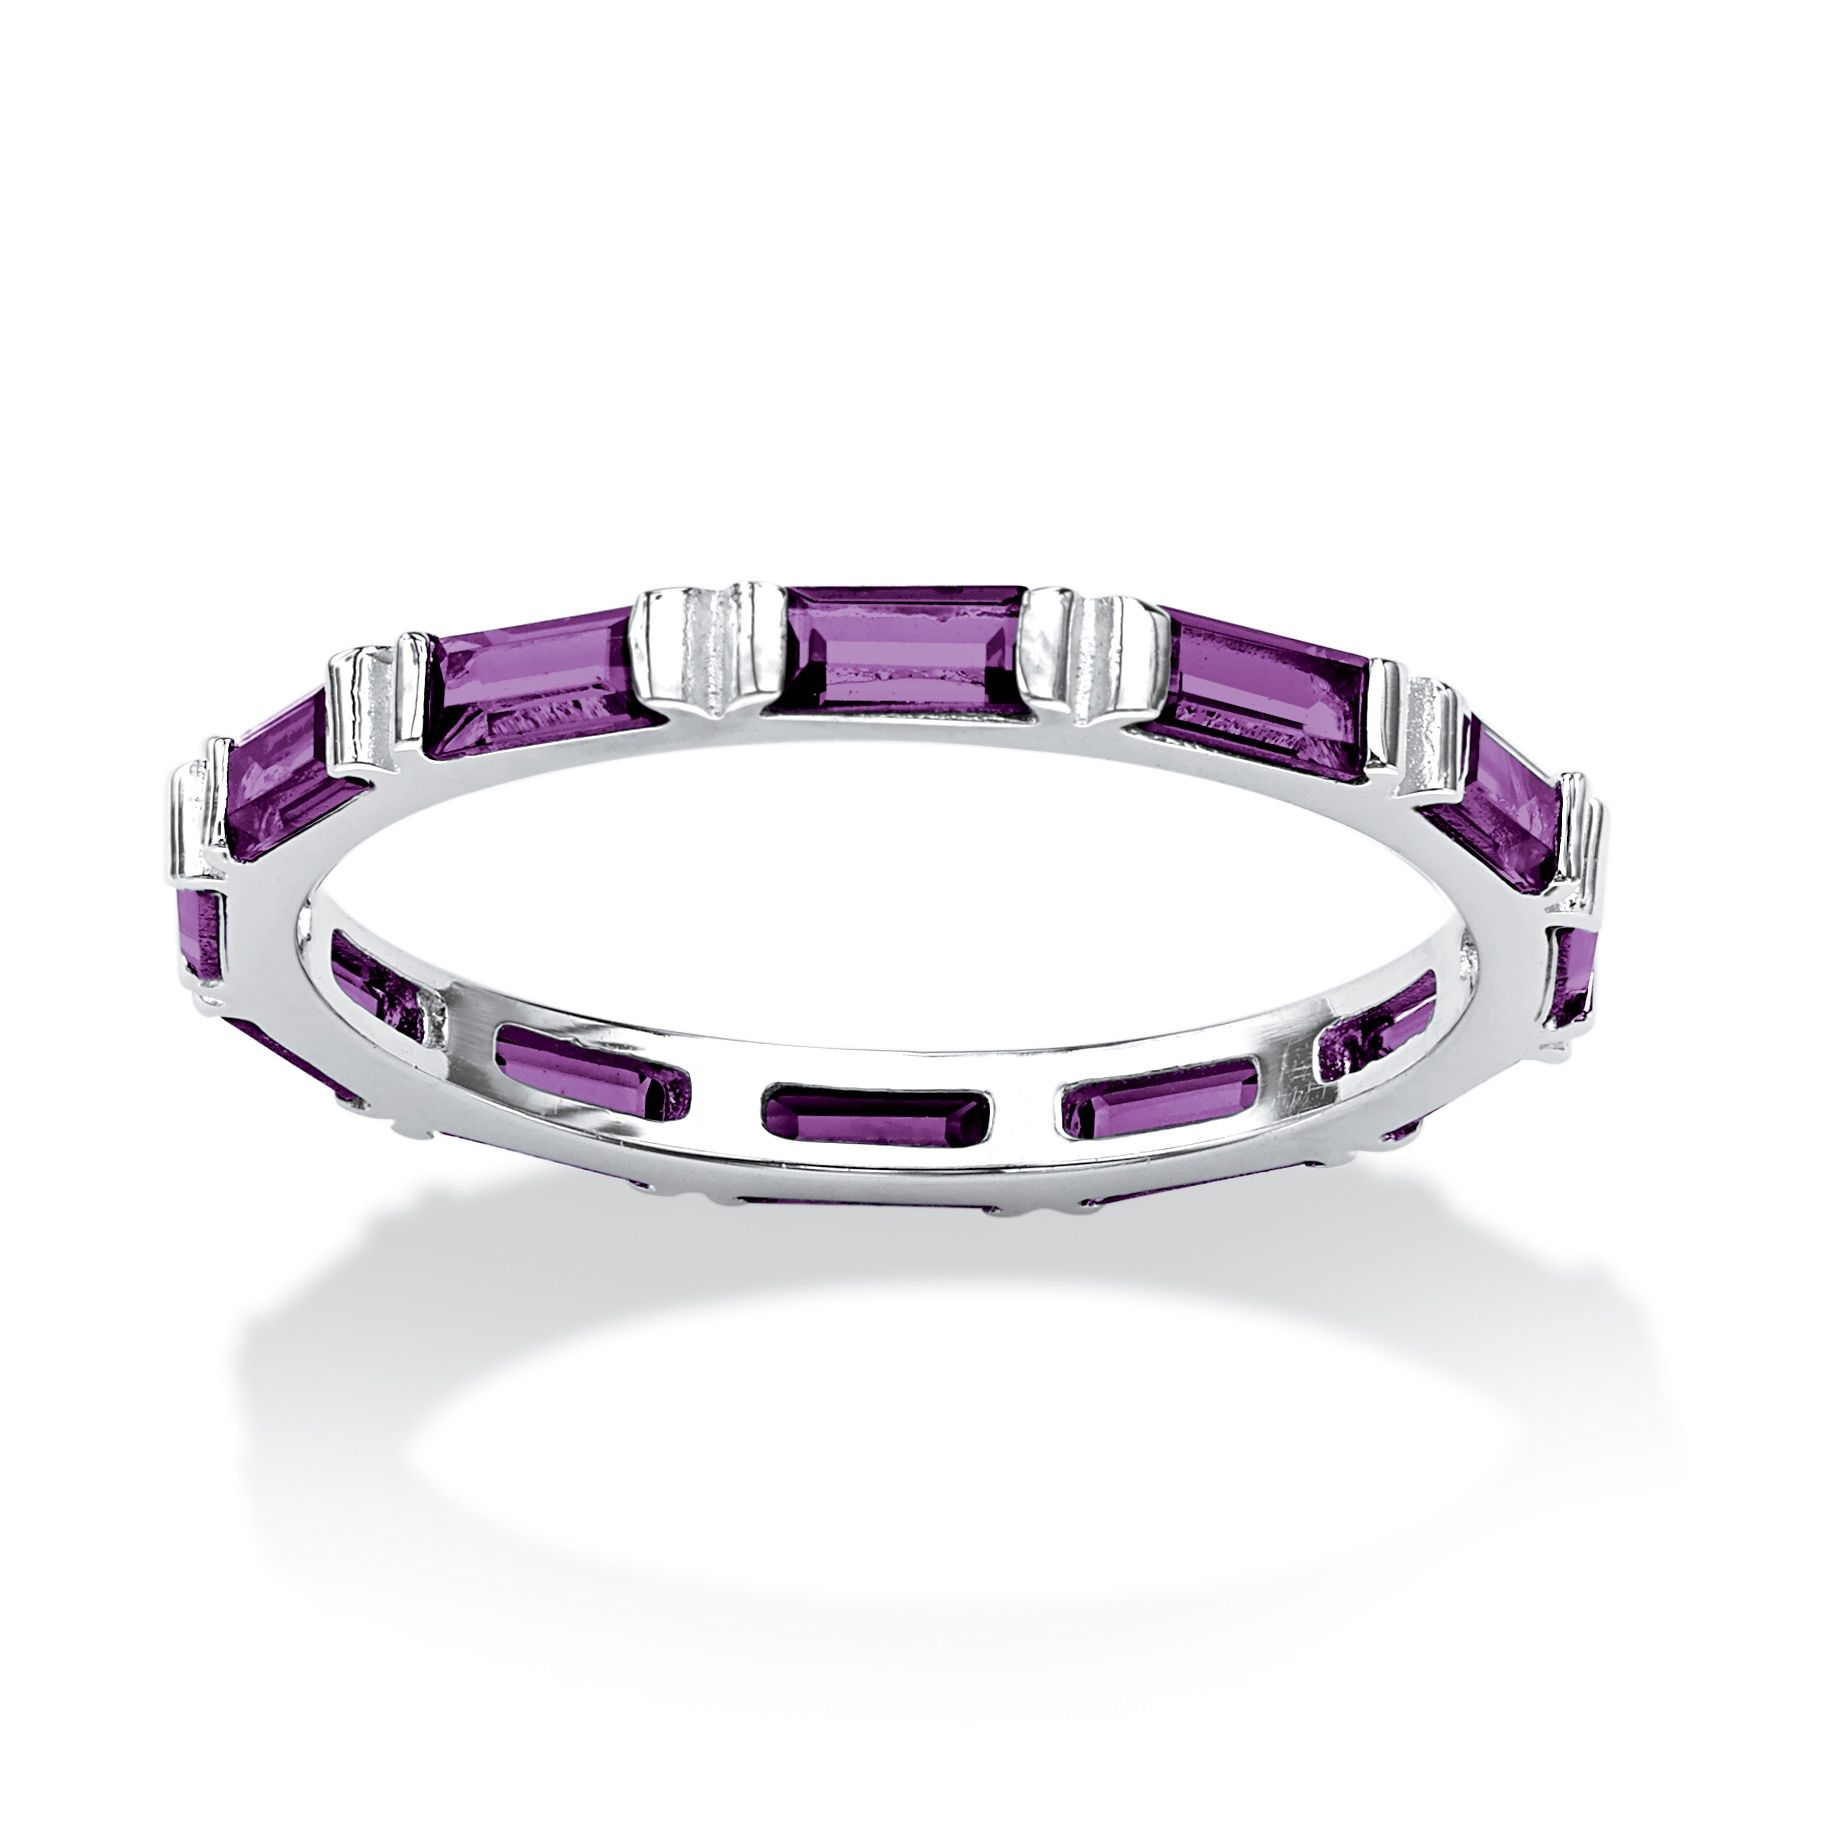 Baguette Birthstone Stackable Eternity Band in Sterling Silver at PalmBeach Jewelry~~$29.95